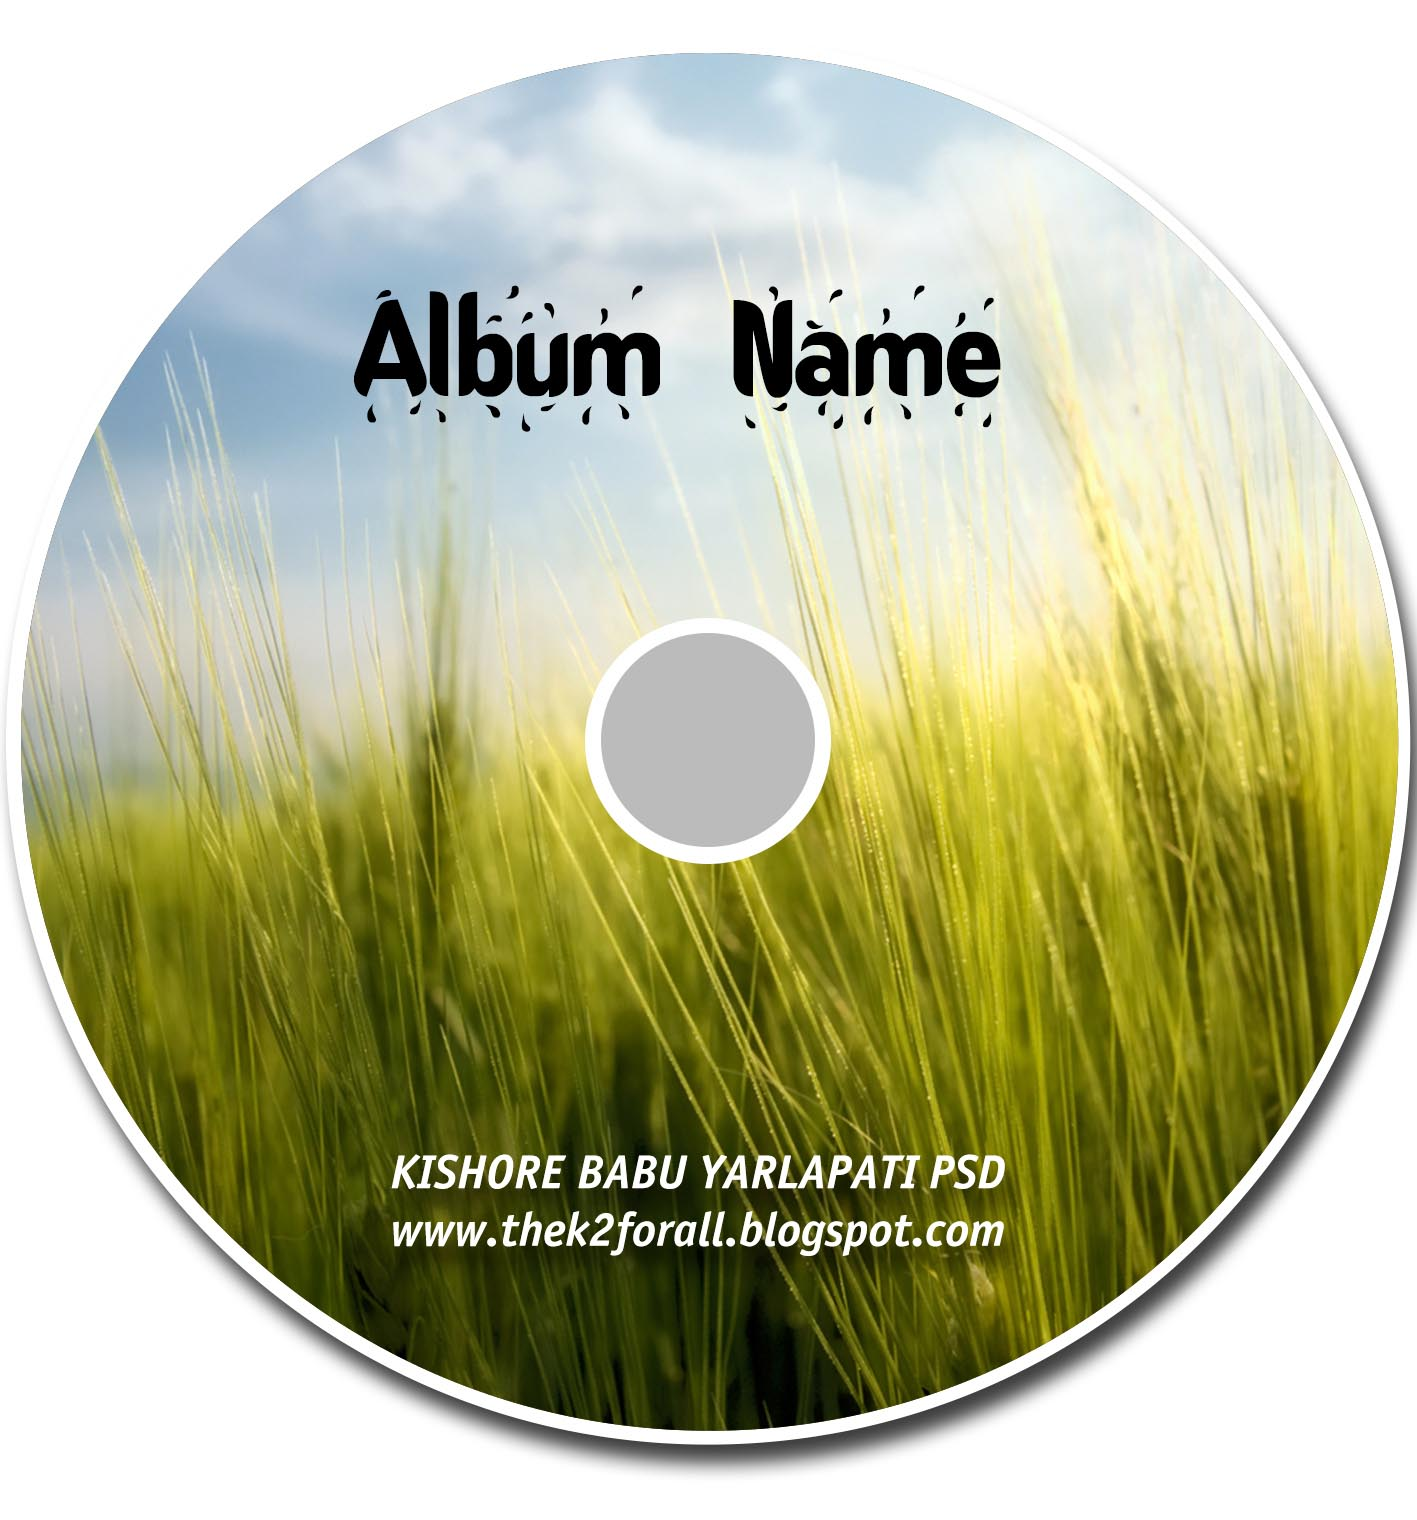 how to make a cd cover in photoshop